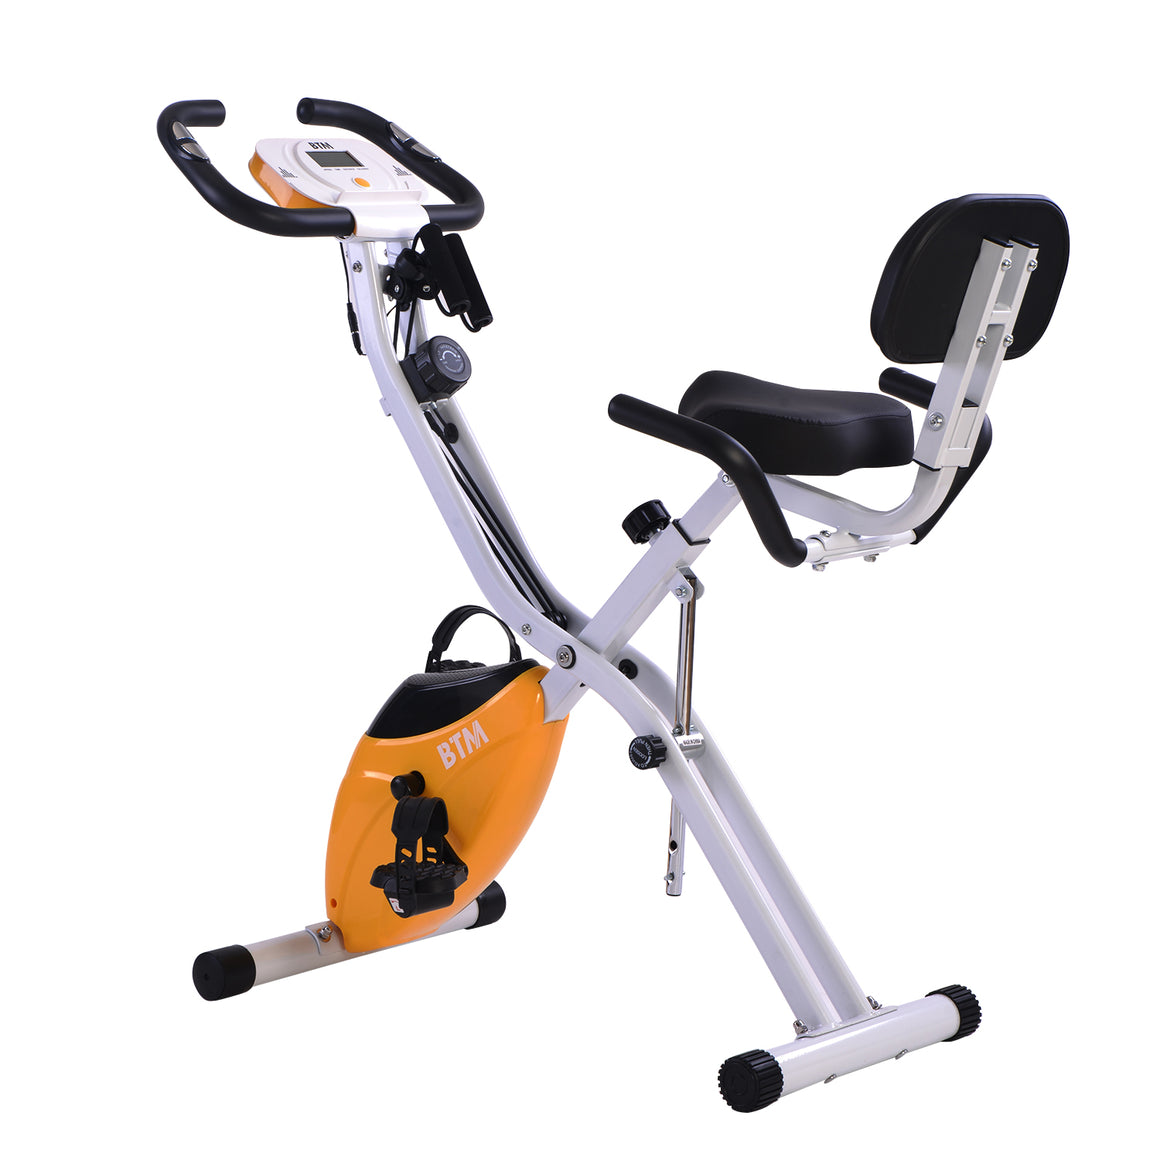 G500 Folding Cycling Exercise Bike Indoor Training X Bike for Home Cardio Workout UK-3-5